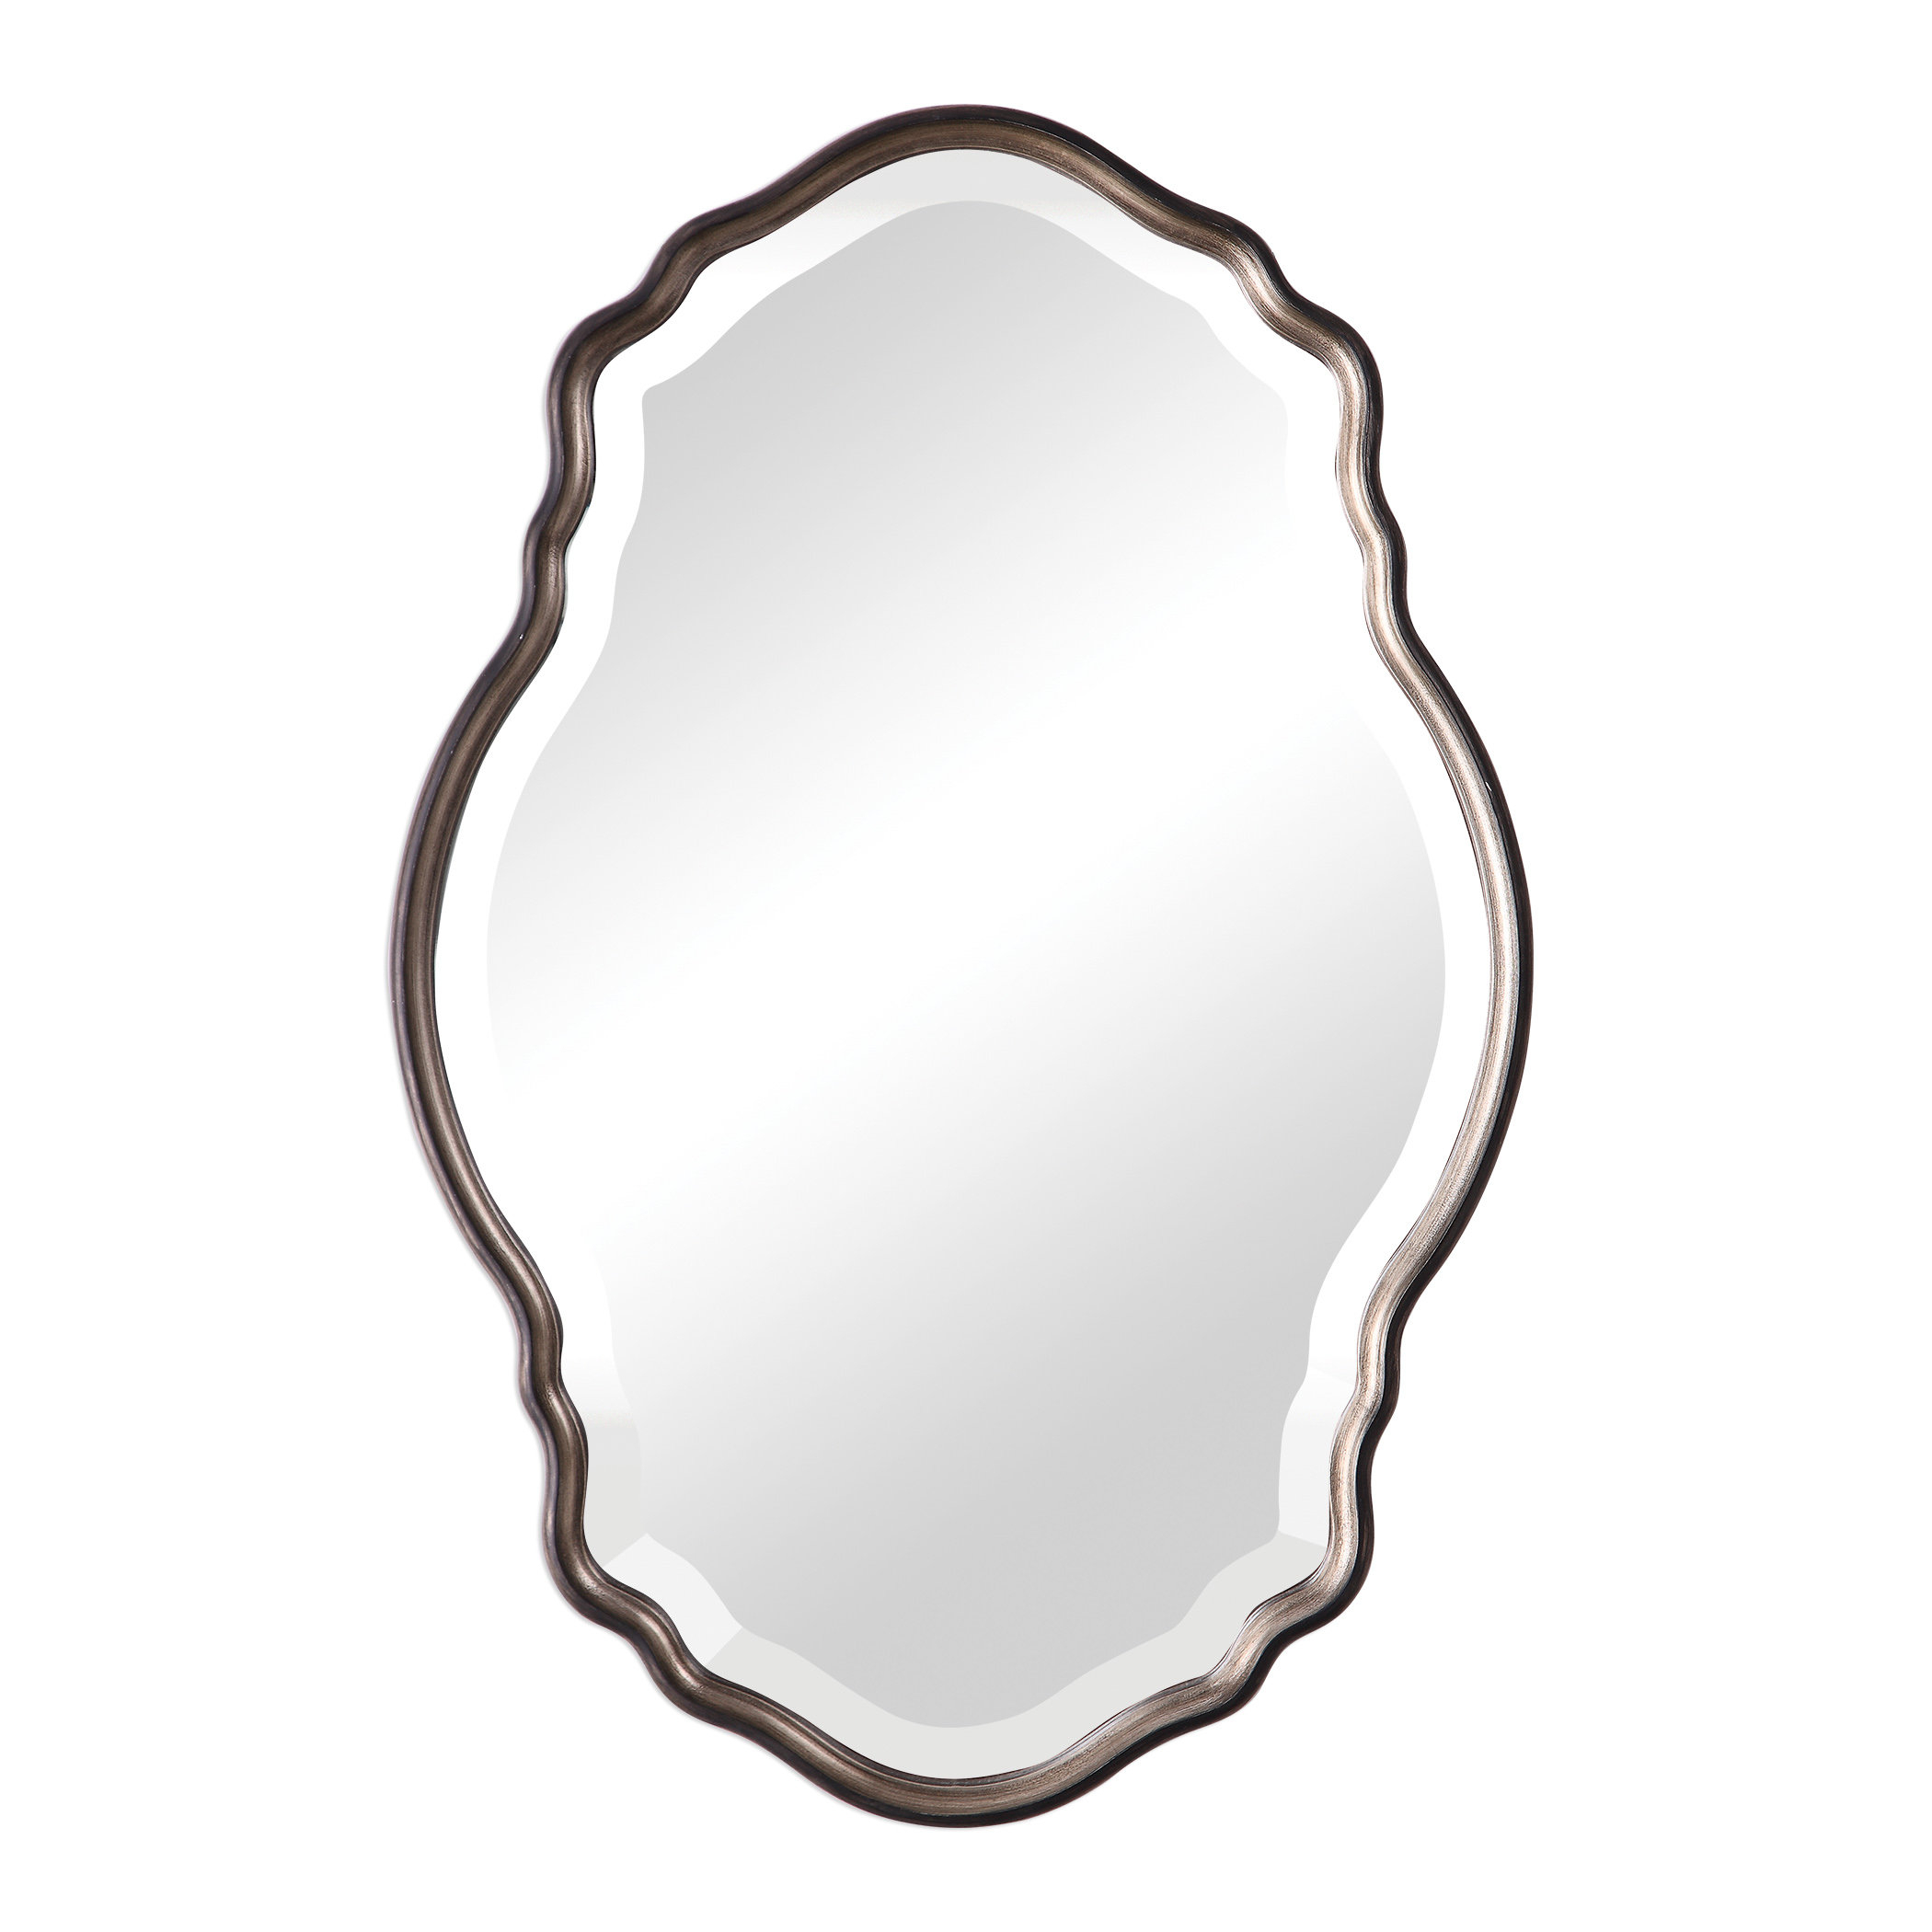 Christner Modern & Contemporary Beveled Wall Mirror Intended For Guidinha Modern & Contemporary Accent Mirrors (View 20 of 20)